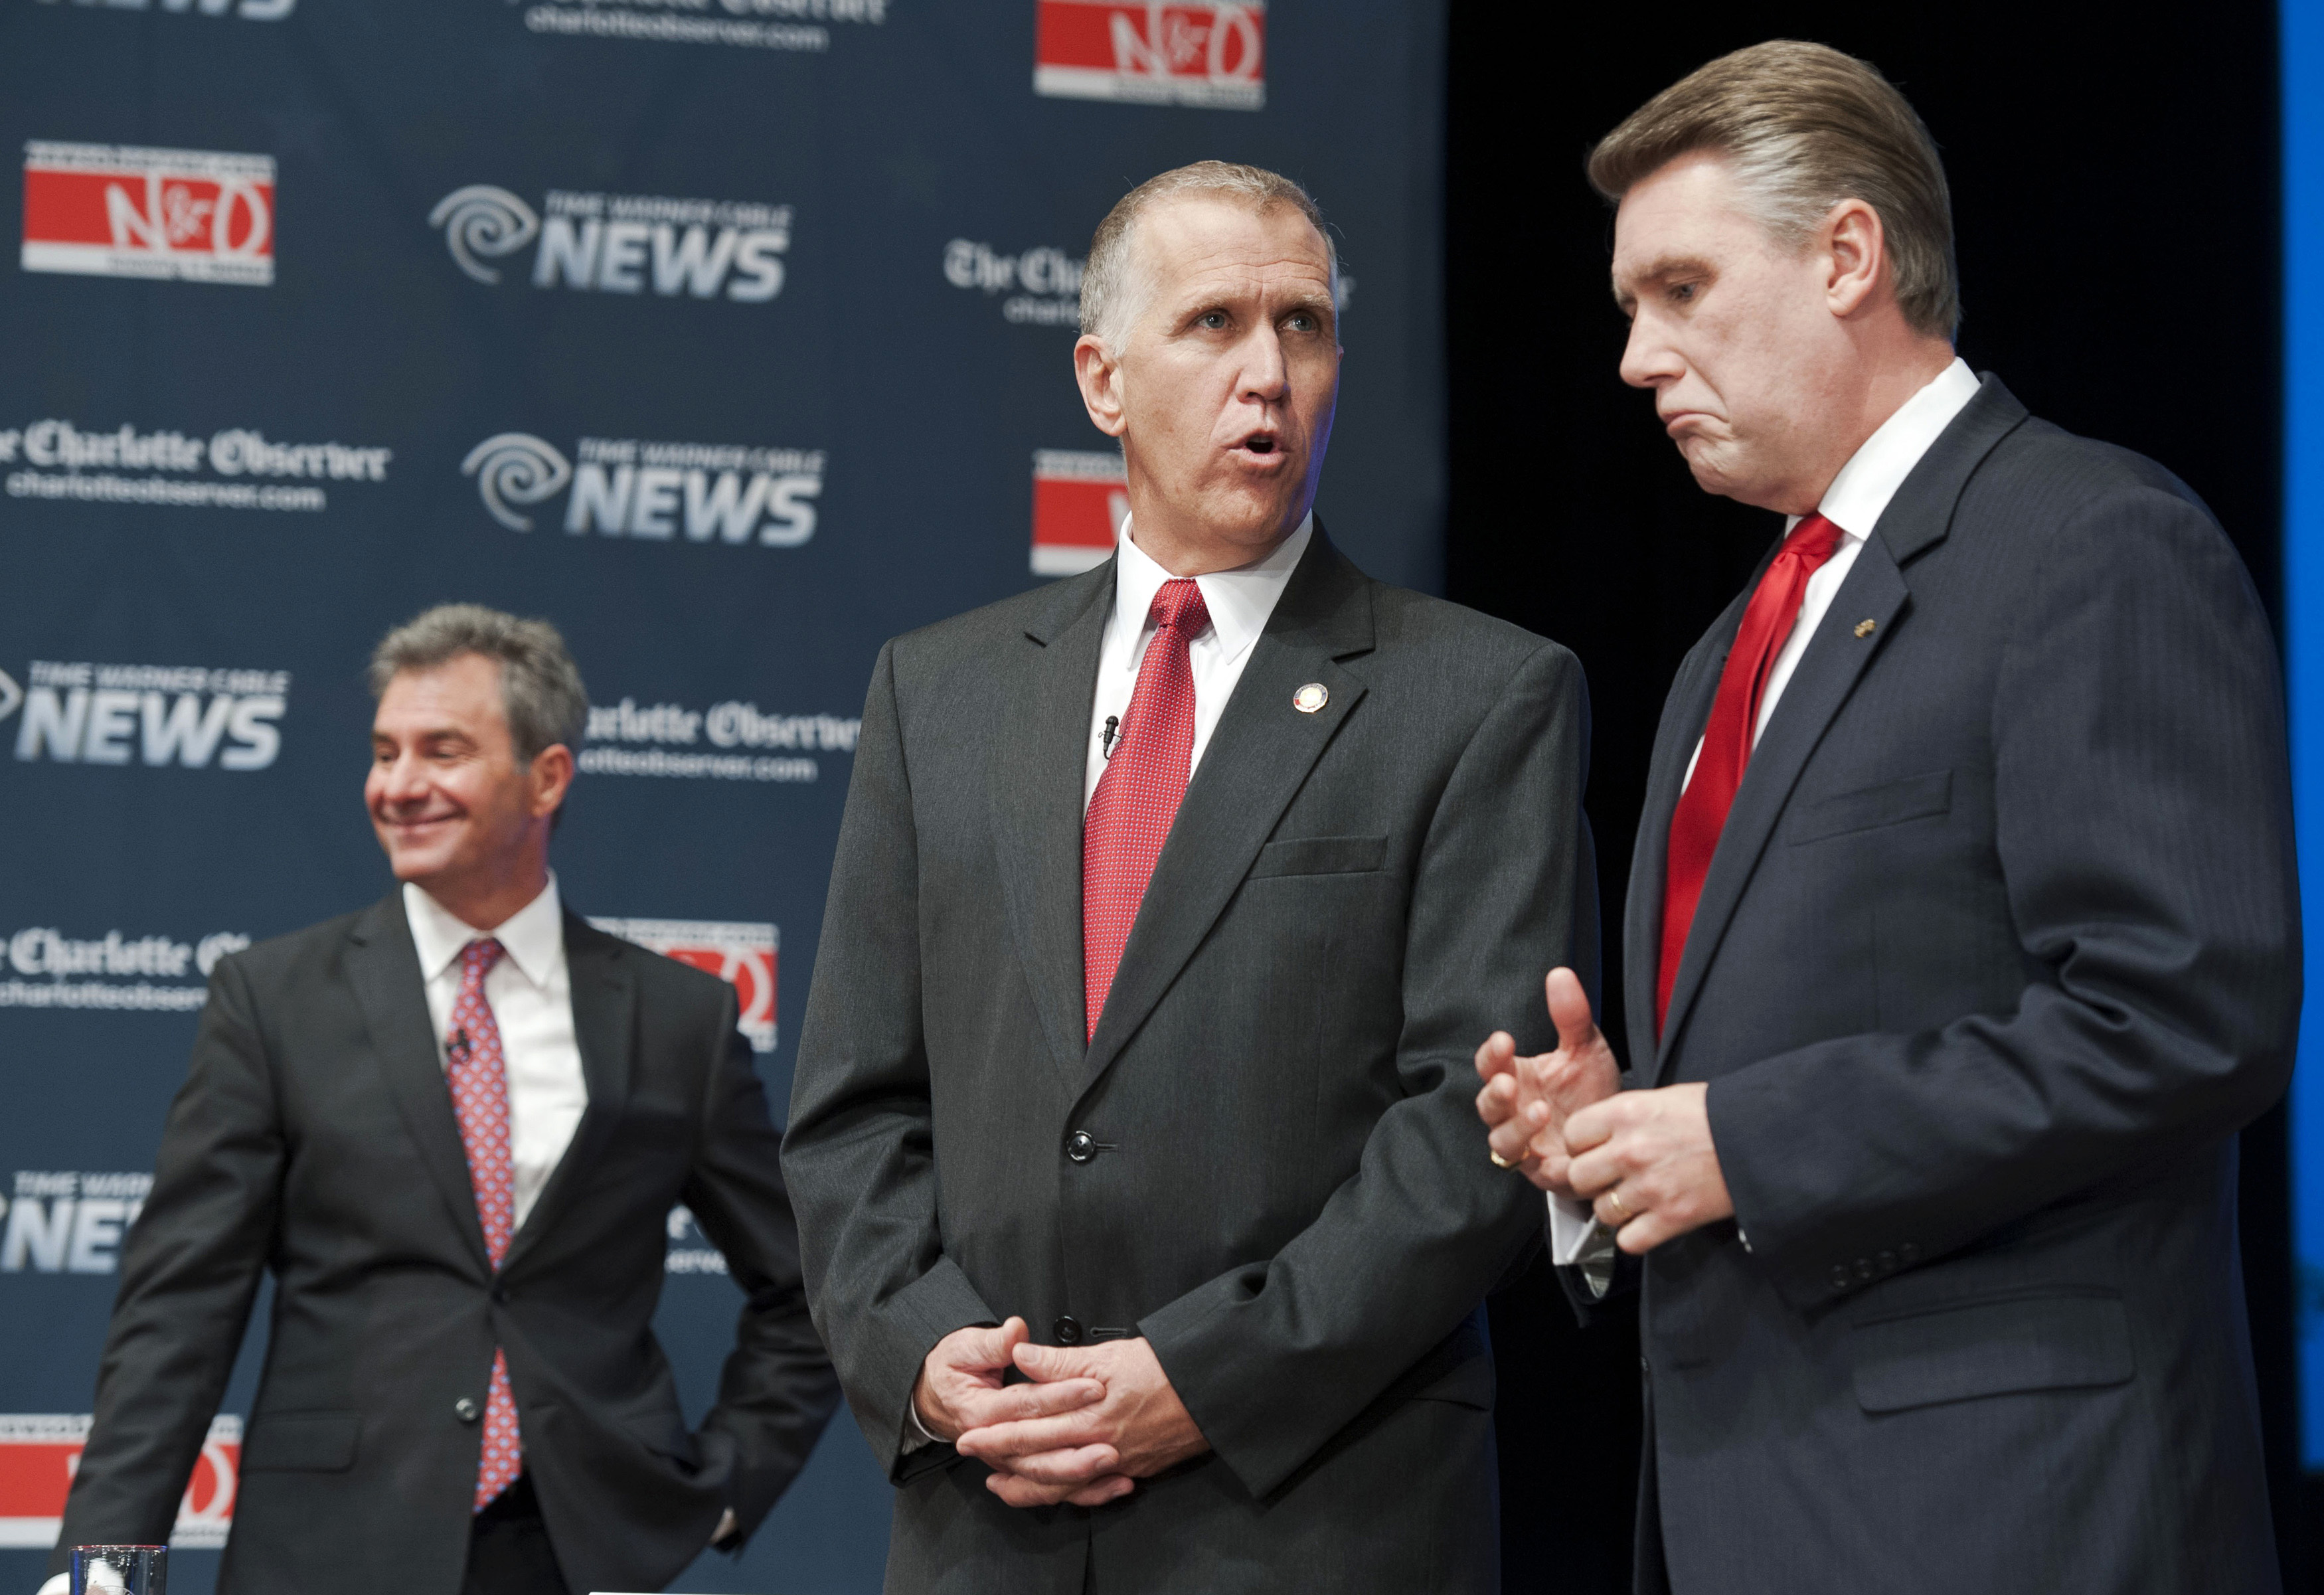 Thom Tillis (C) talks with Mark Harris, (R) before a debate between the four top-polling Republican candidates in North Carolina for the U.S. Senate, at Davidson College in Davidson, North Carolina April 22, 2014. Also shown is candidate Greg Brannon (L). Picture taken April 22, 2014. NORTH CAROLINA-SENATE REUTERS/Davis Turner